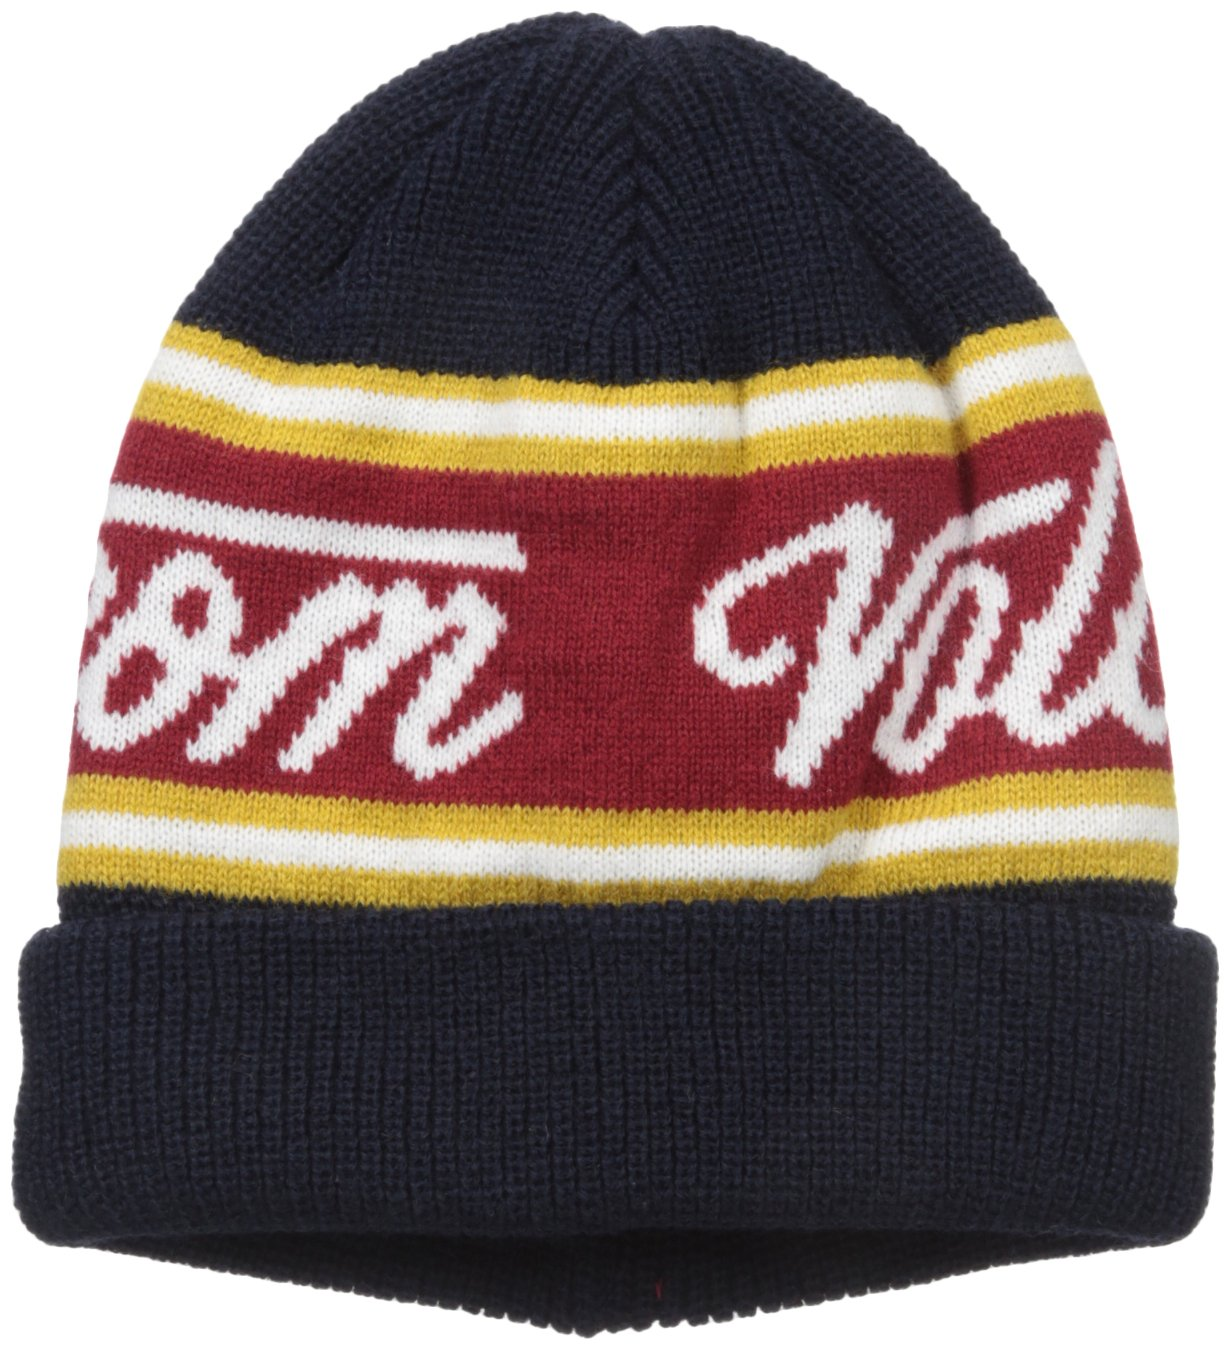 Volcom Big Boys' Fine Sign Youth Beanie, Navy, One Size by Volcom (Image #1)